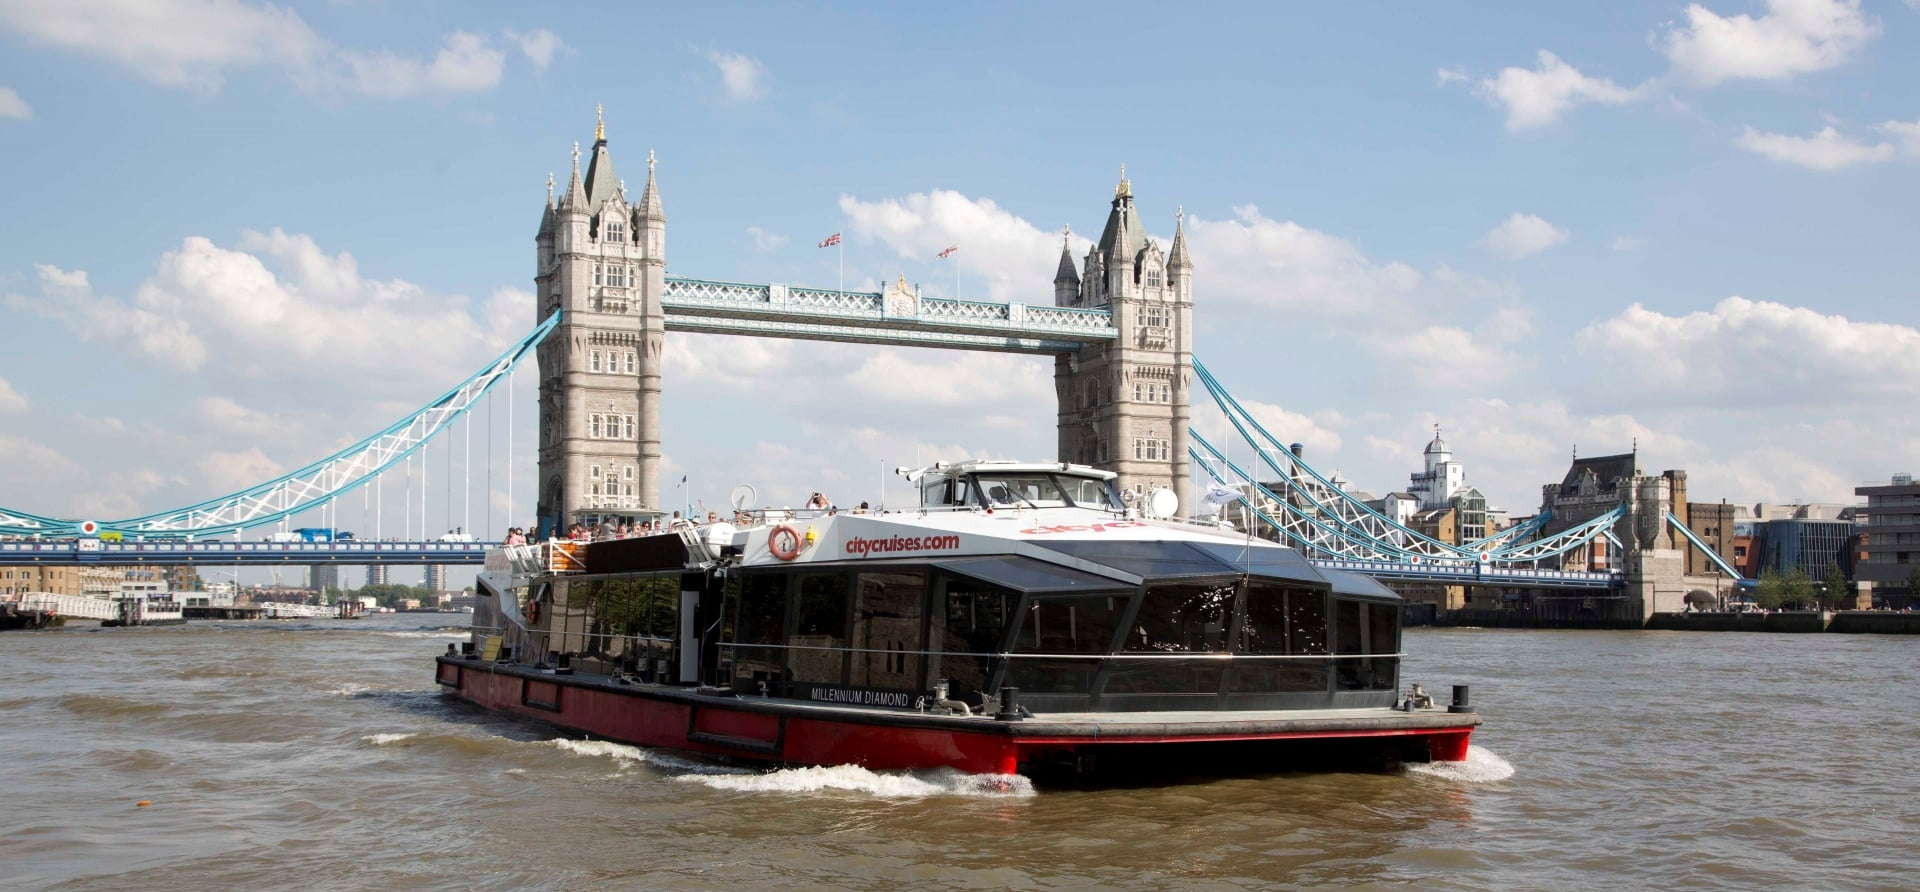 Thames River Circular Sightseeing Tour for 2-1